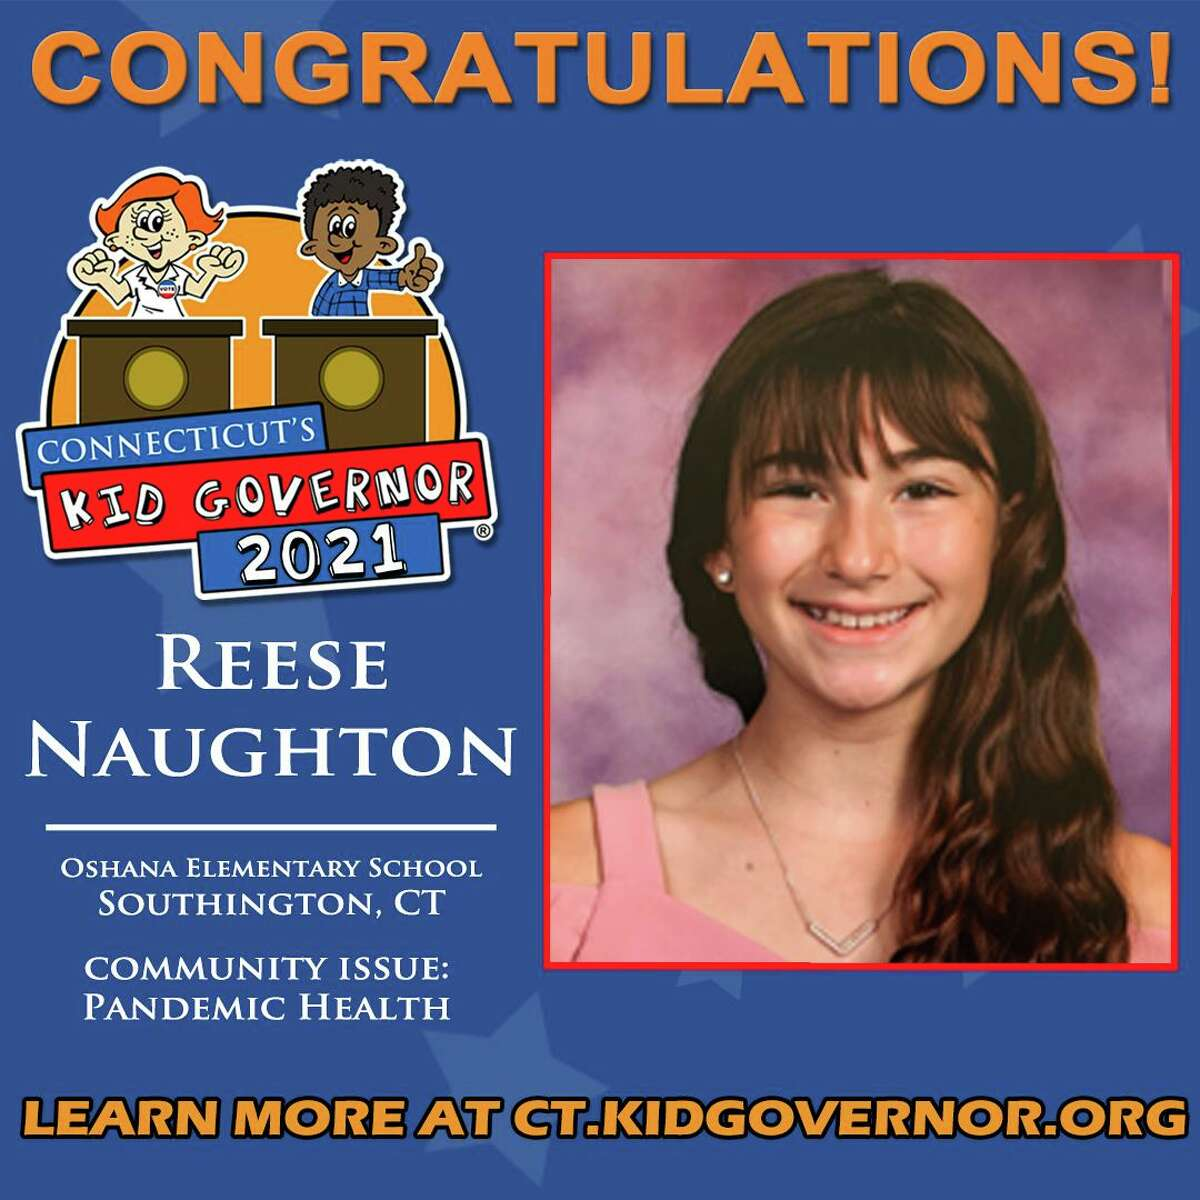 Reese Naughton The Connecticut Democracy Center recently announced the winner of the Connecticut's Kid Governor® (CTKG) Statewide Election: Reese Naughton of Oshana Elementary School in Southington. The announcement came during an outdoor, socially distanced assembly where Reese and her peers were surprised with the news.